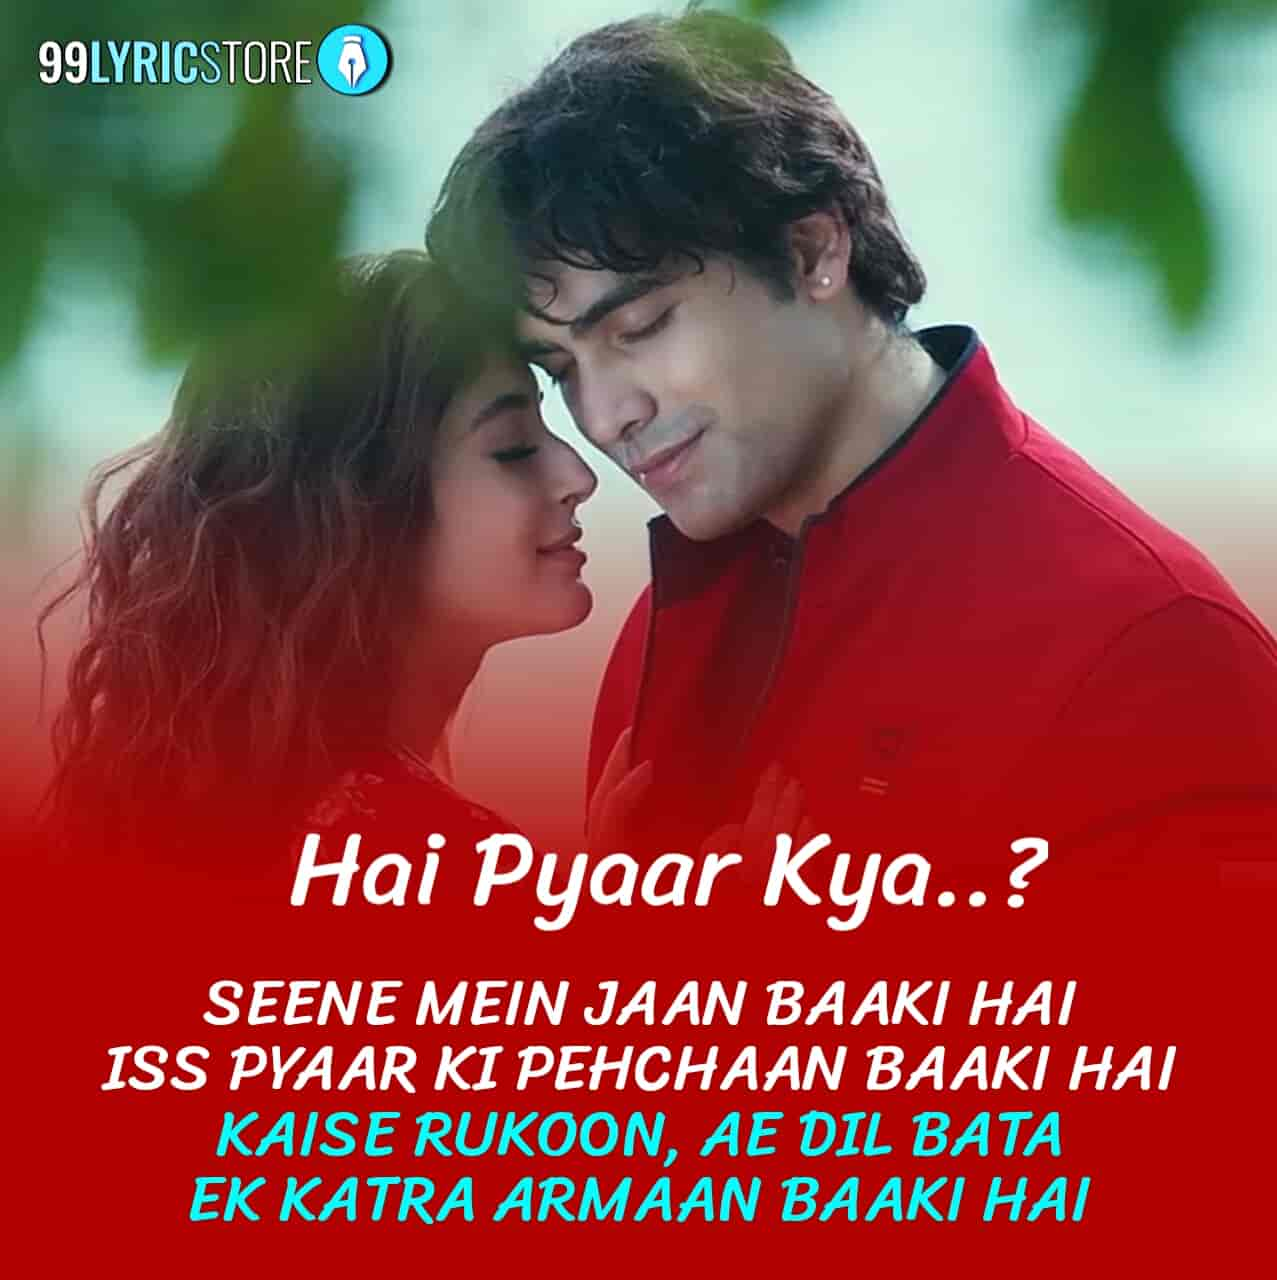 Hai pyaar kya song sung by Jubin Nautiyal